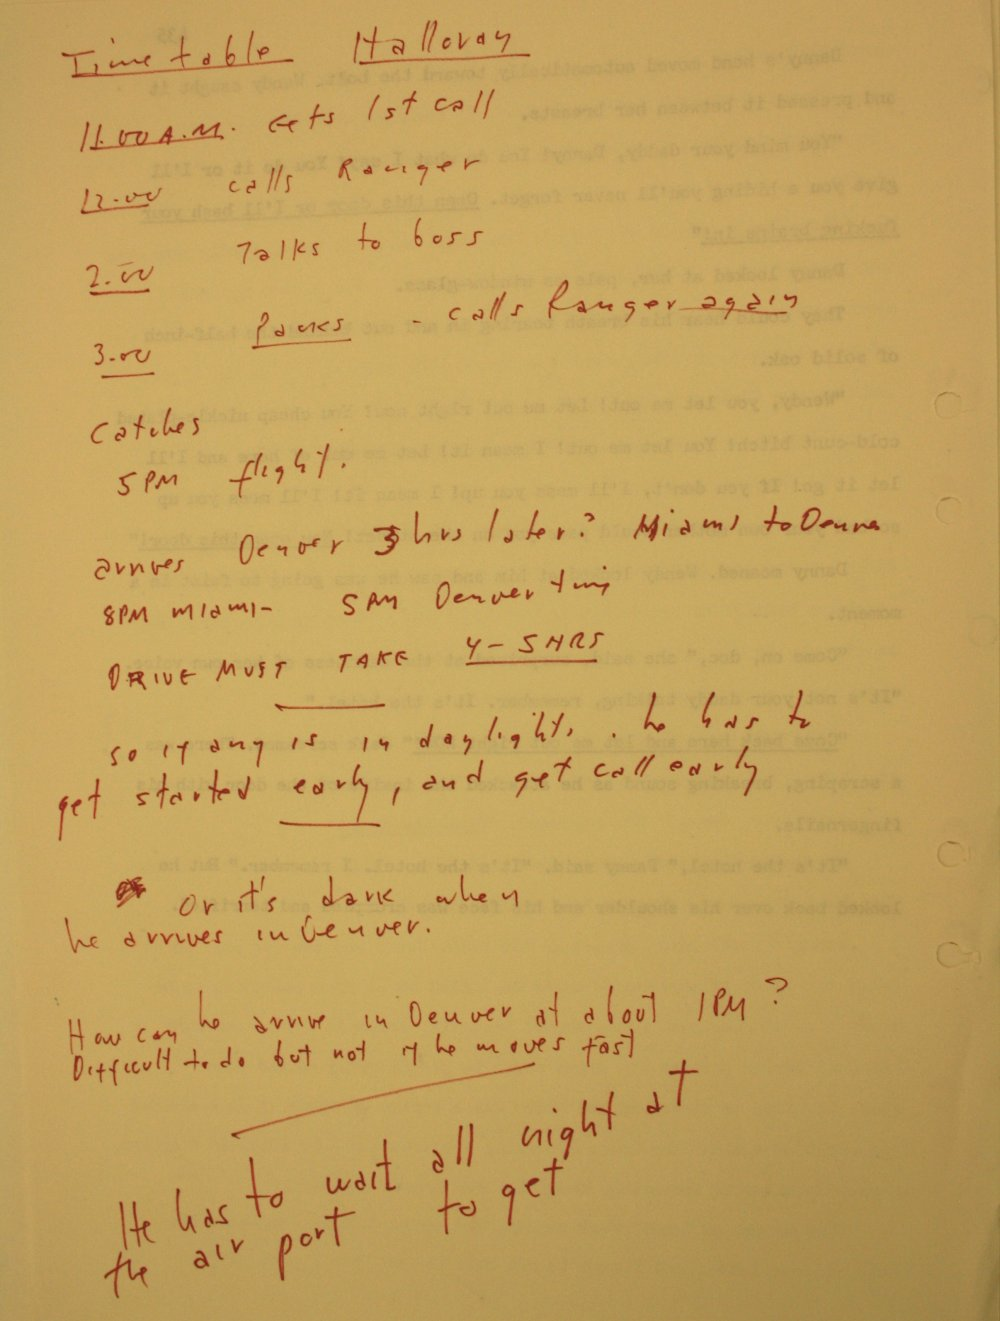 Kubrick precisely timetables a journey from Miami to The Overlook Hotel for the character of Dick Hallorann (played in the film by Scatman Crothers)